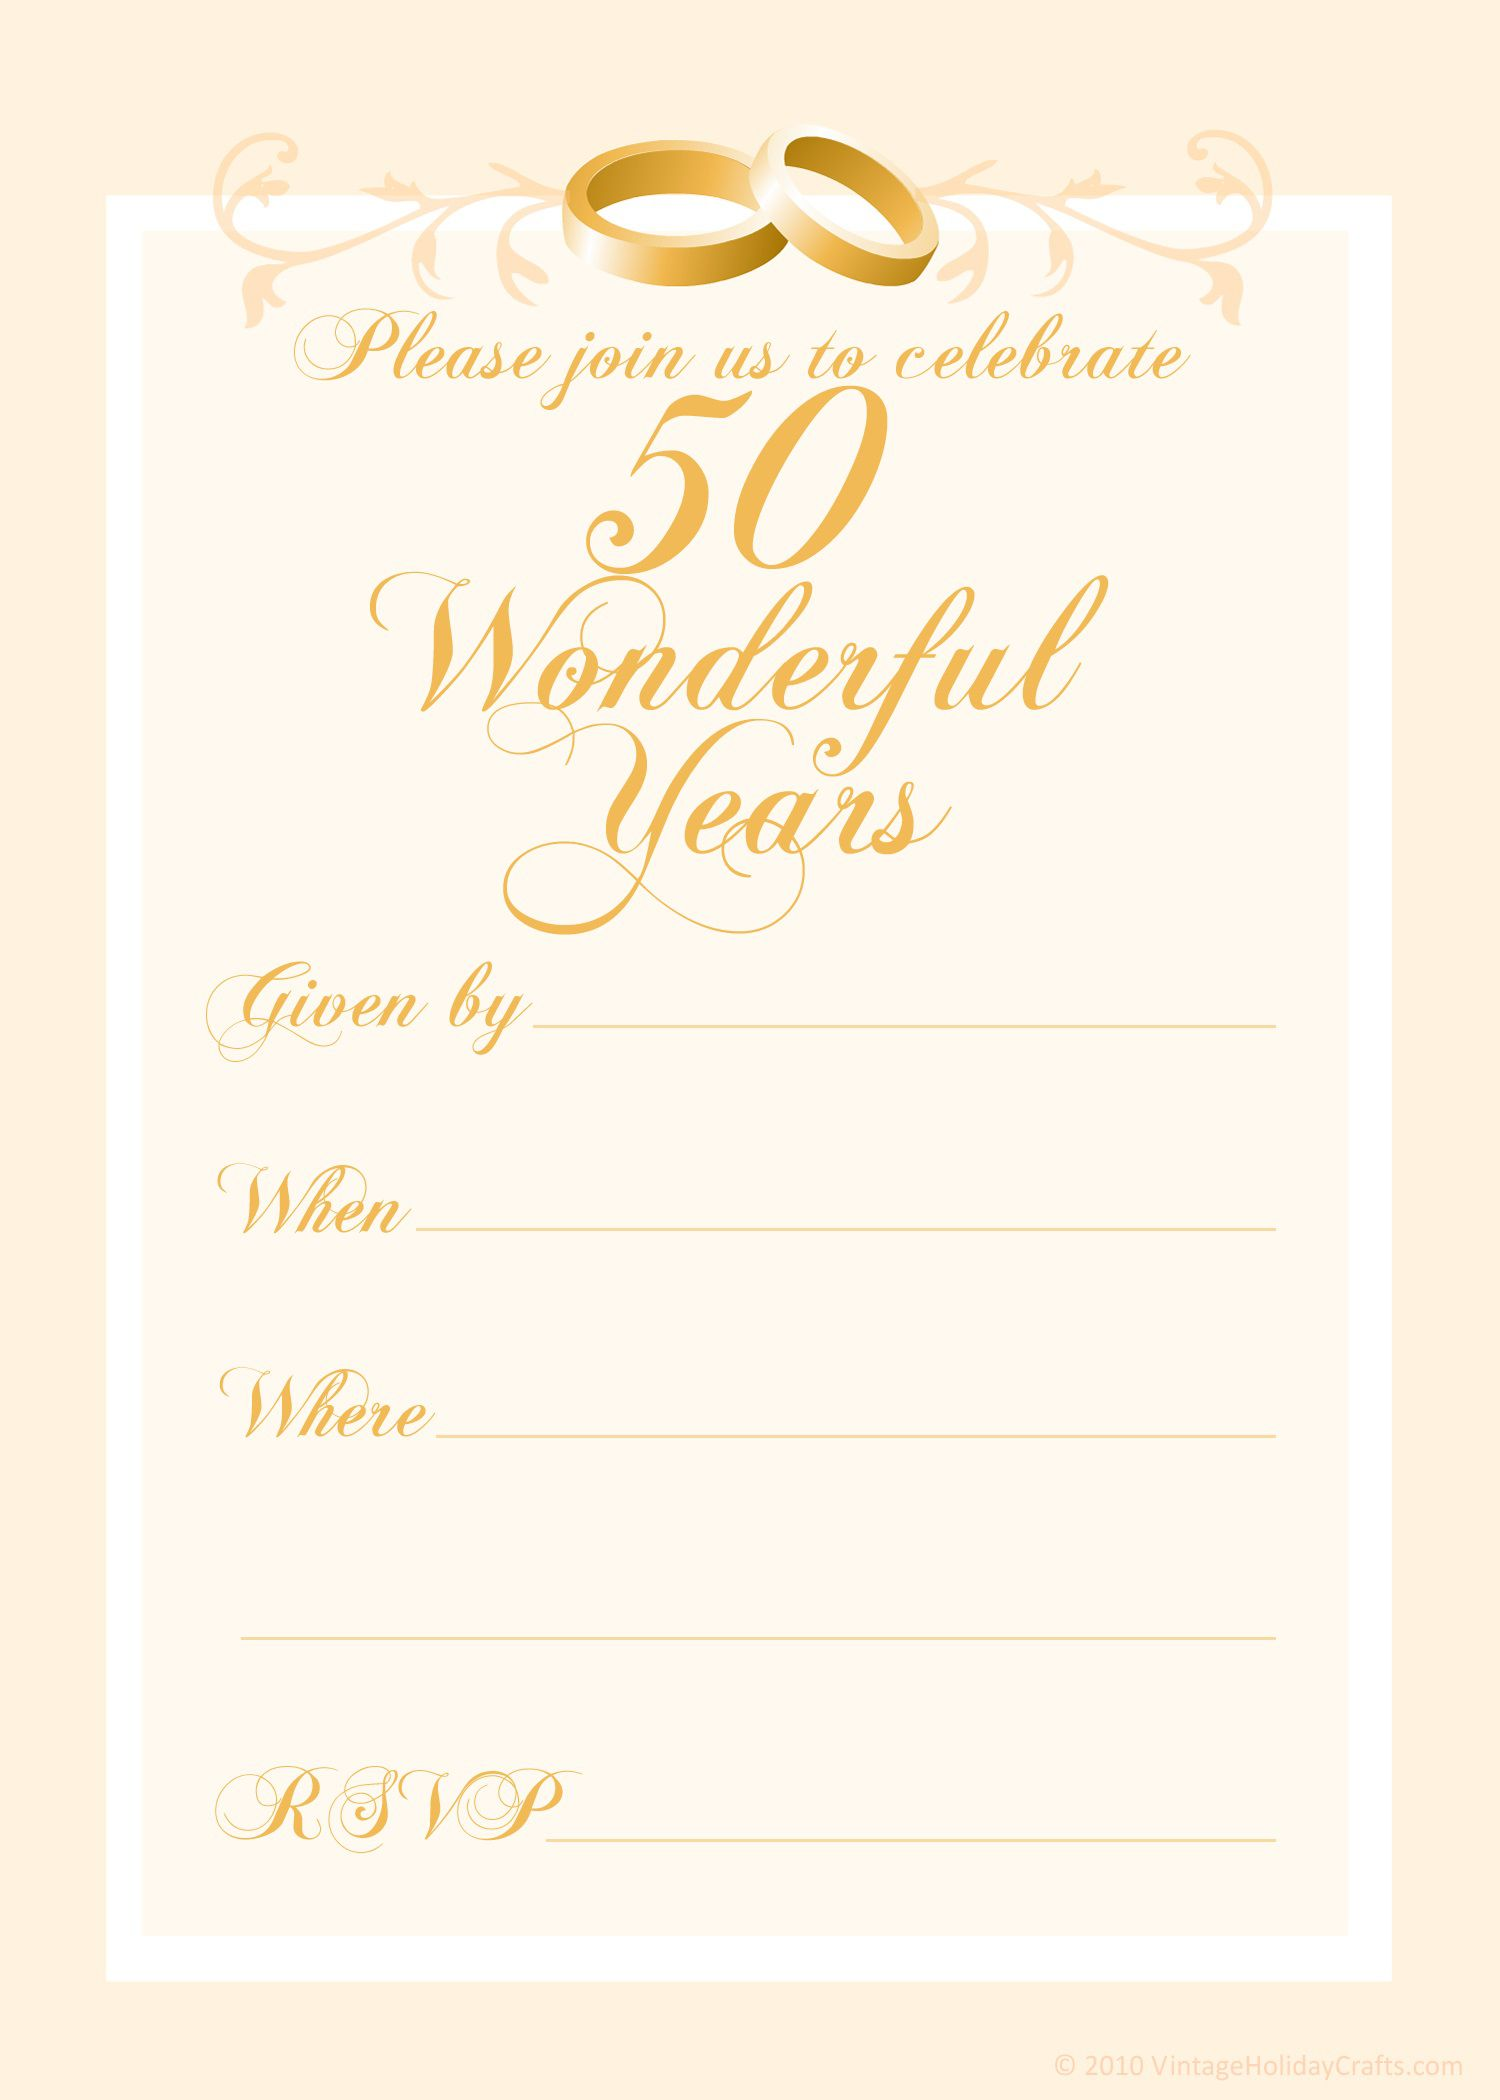 000 Magnificent 50th Anniversary Invitation Template Inspiration  Templates Wedding Free Download GoldenFull